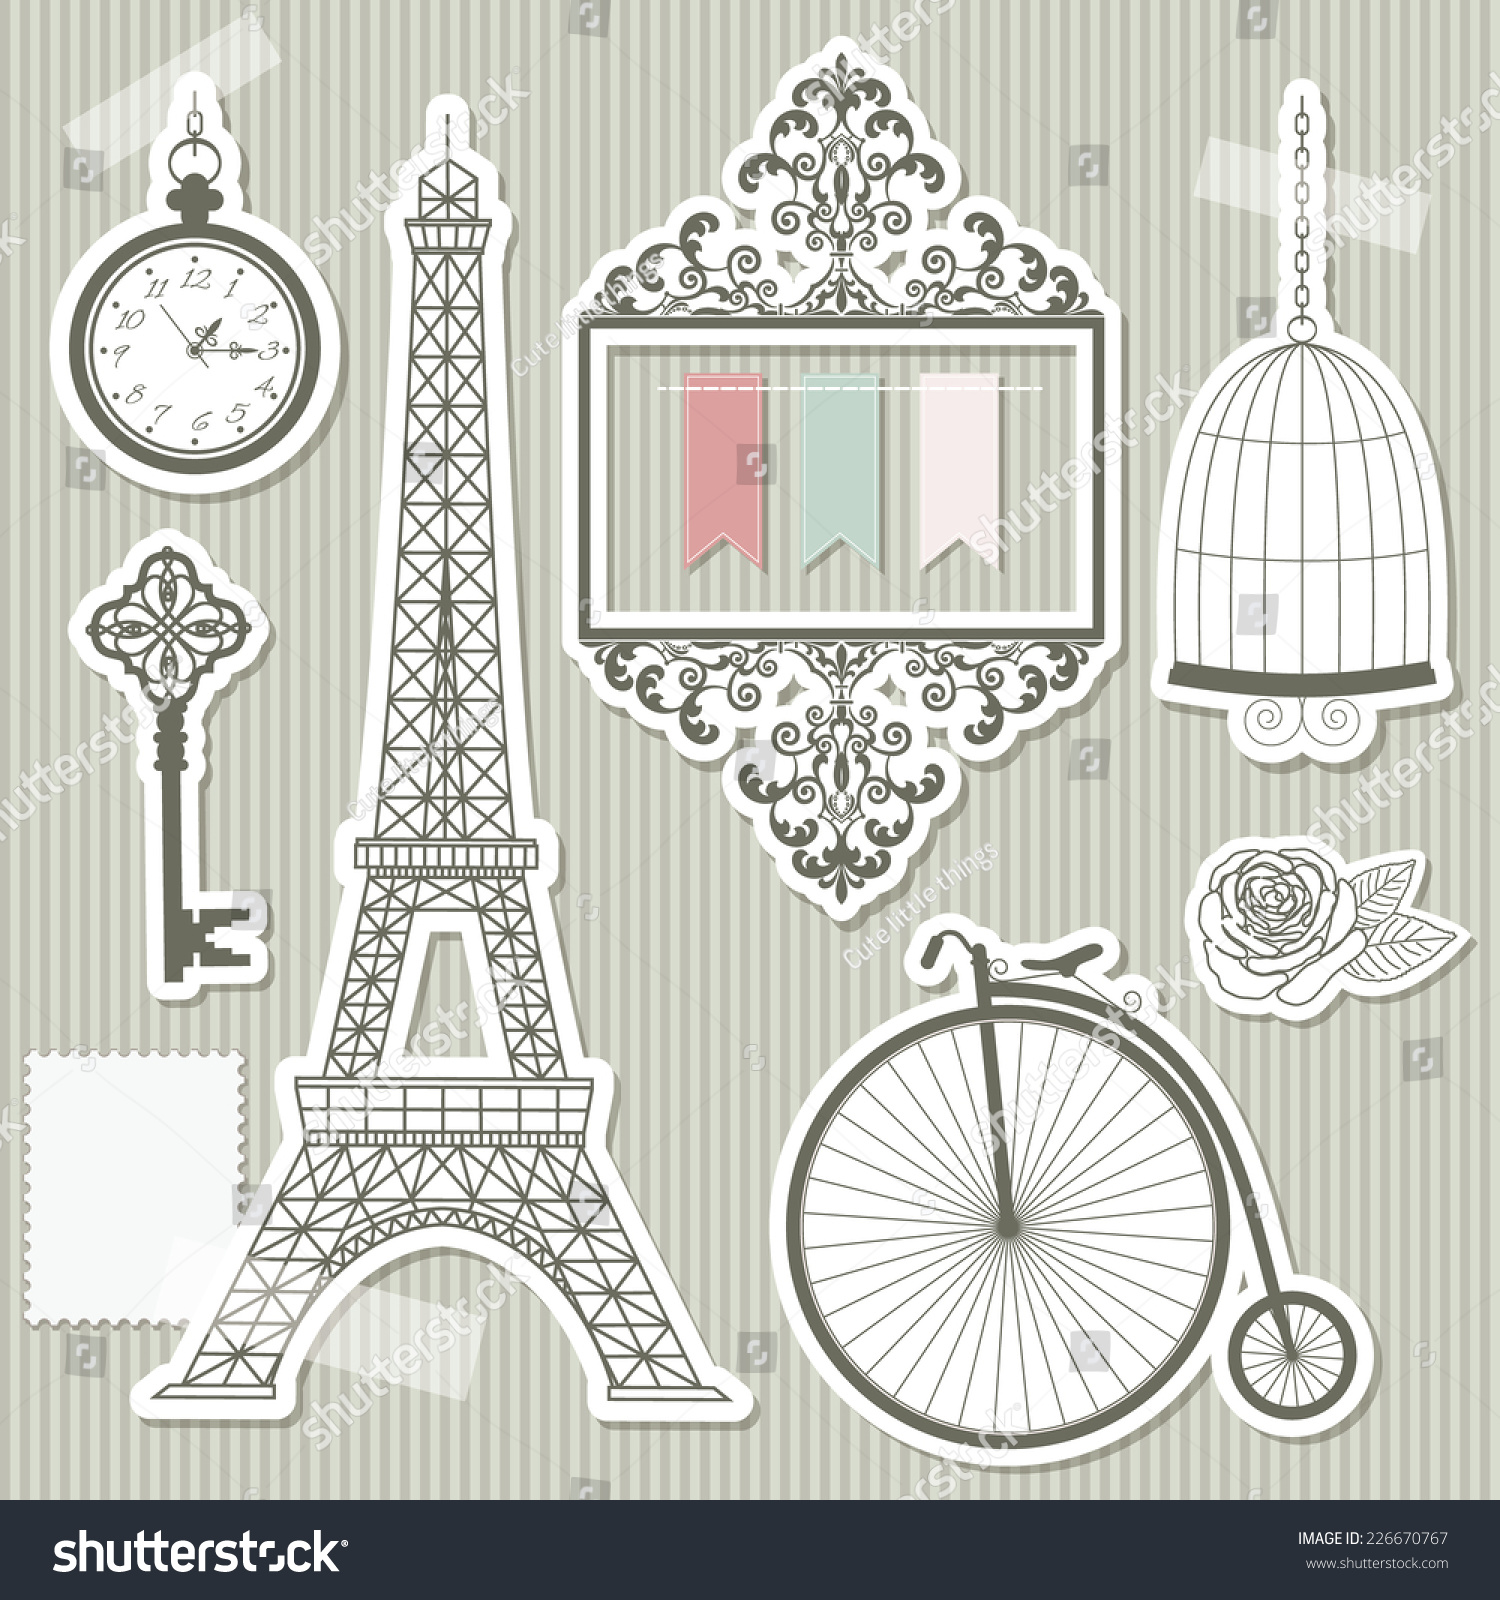 vintage objects silhouettes paper cut frame eiffel tower bike bird cage